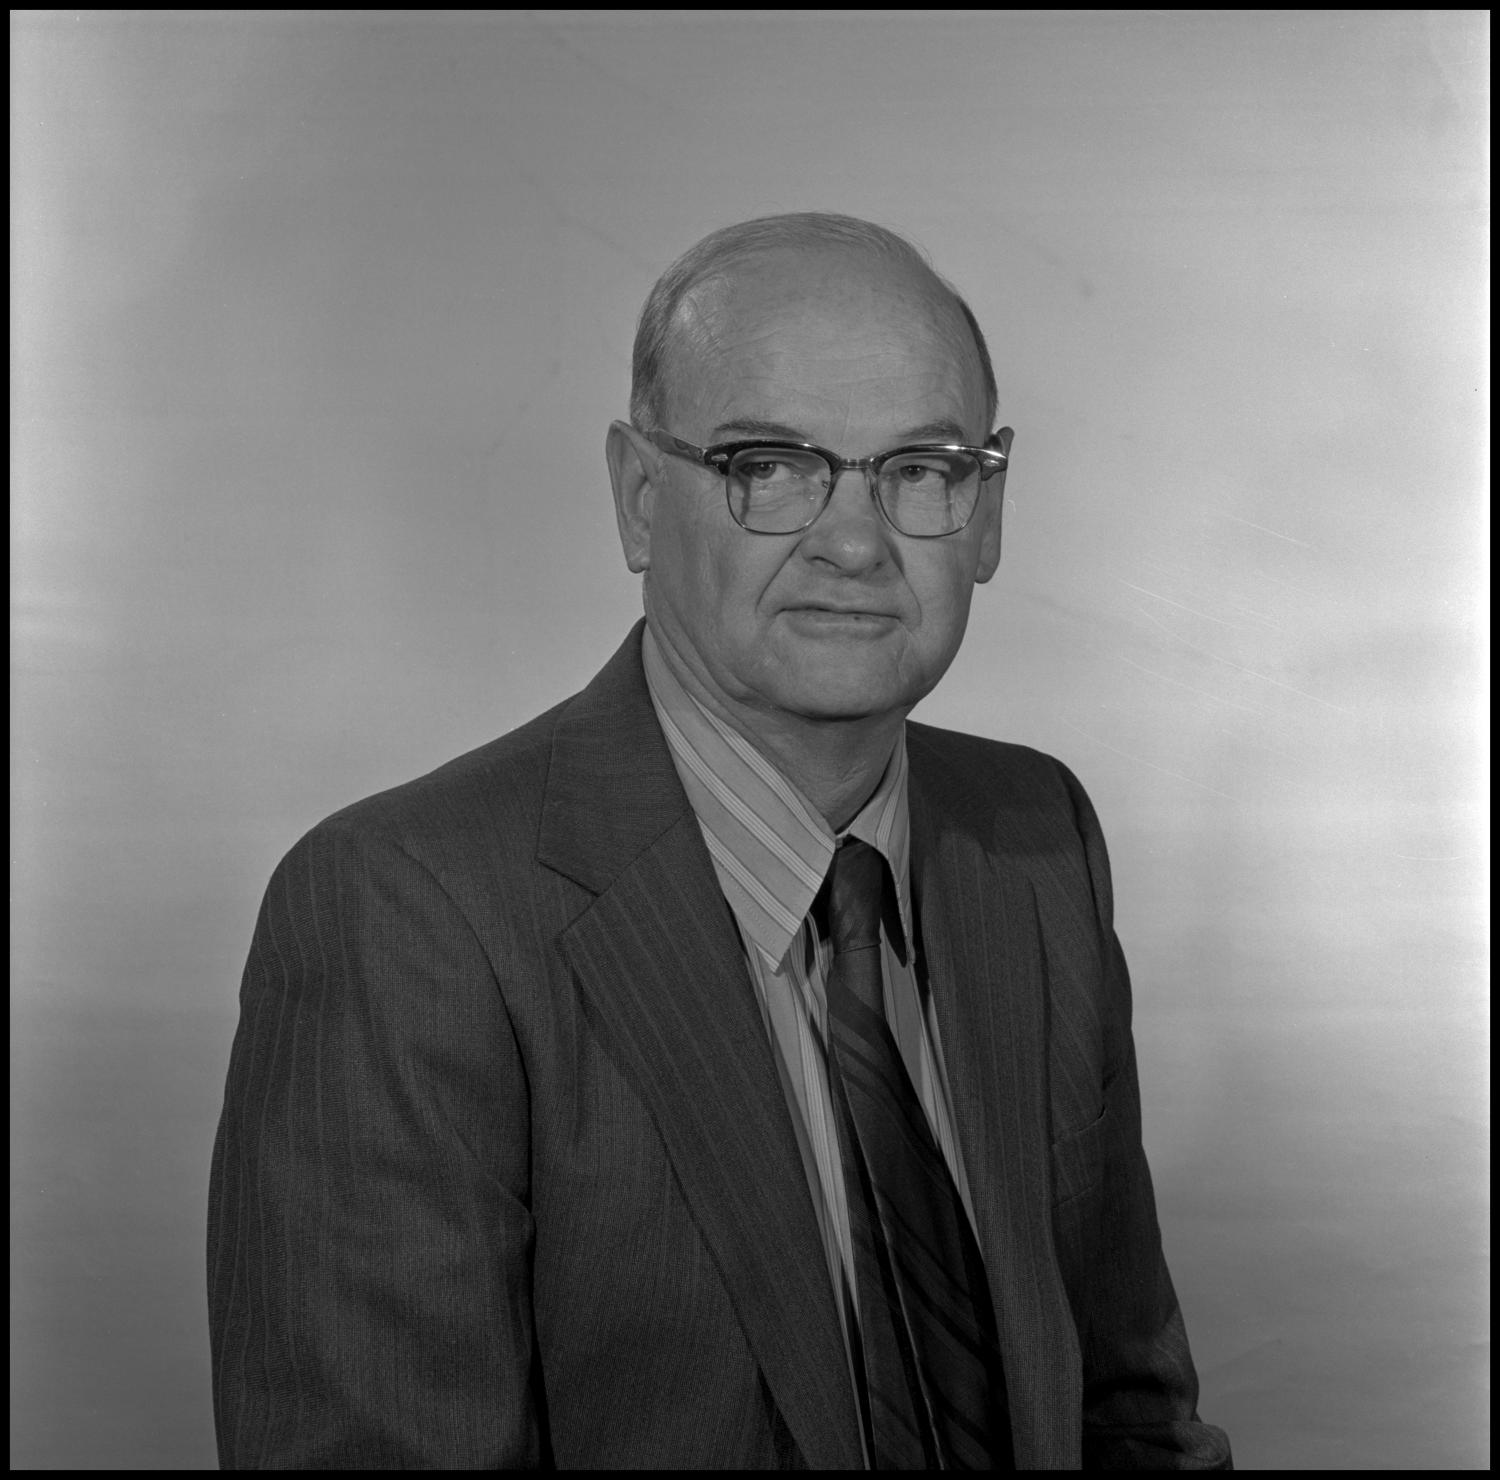 [Garland Brookshear sitting for portrait], Photograph of Garland Brookshear, a member of the Management faculty at NTSU, sitting for a portrait photo. He is wearing a suit with a striped shirt and tie, as well as a pair of glasses.,